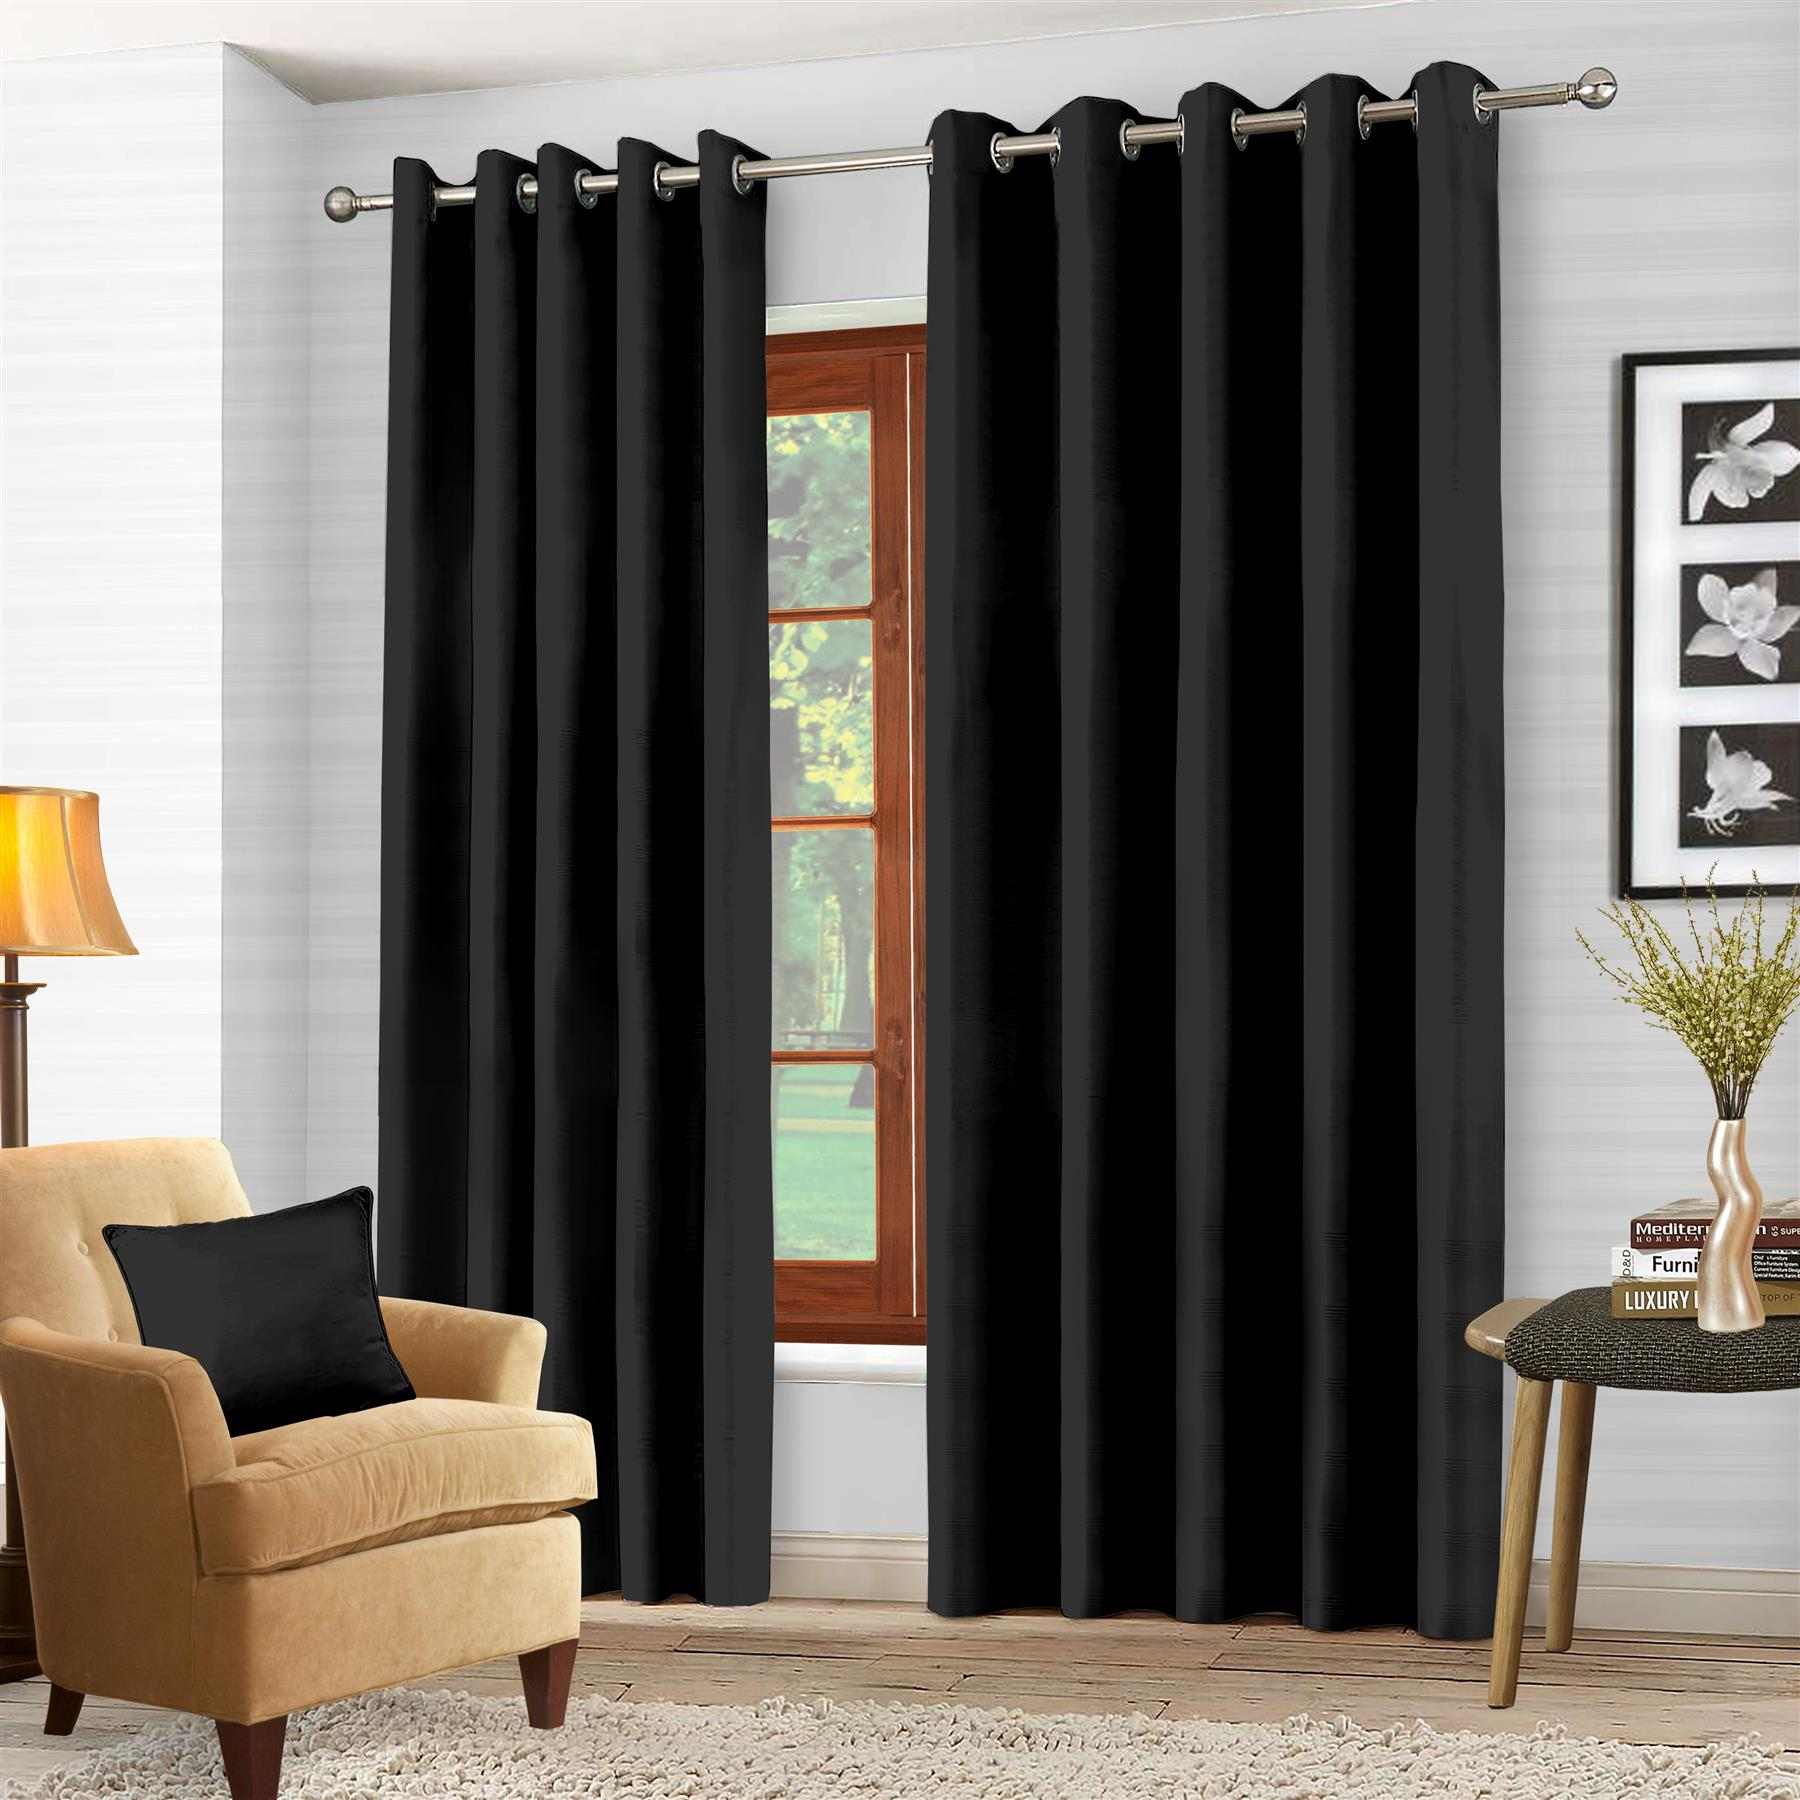 Luxury-Thermal-Blackout-Eyelet-Ring-Top-Curtains-Pair-with-tie-backs thumbnail 5